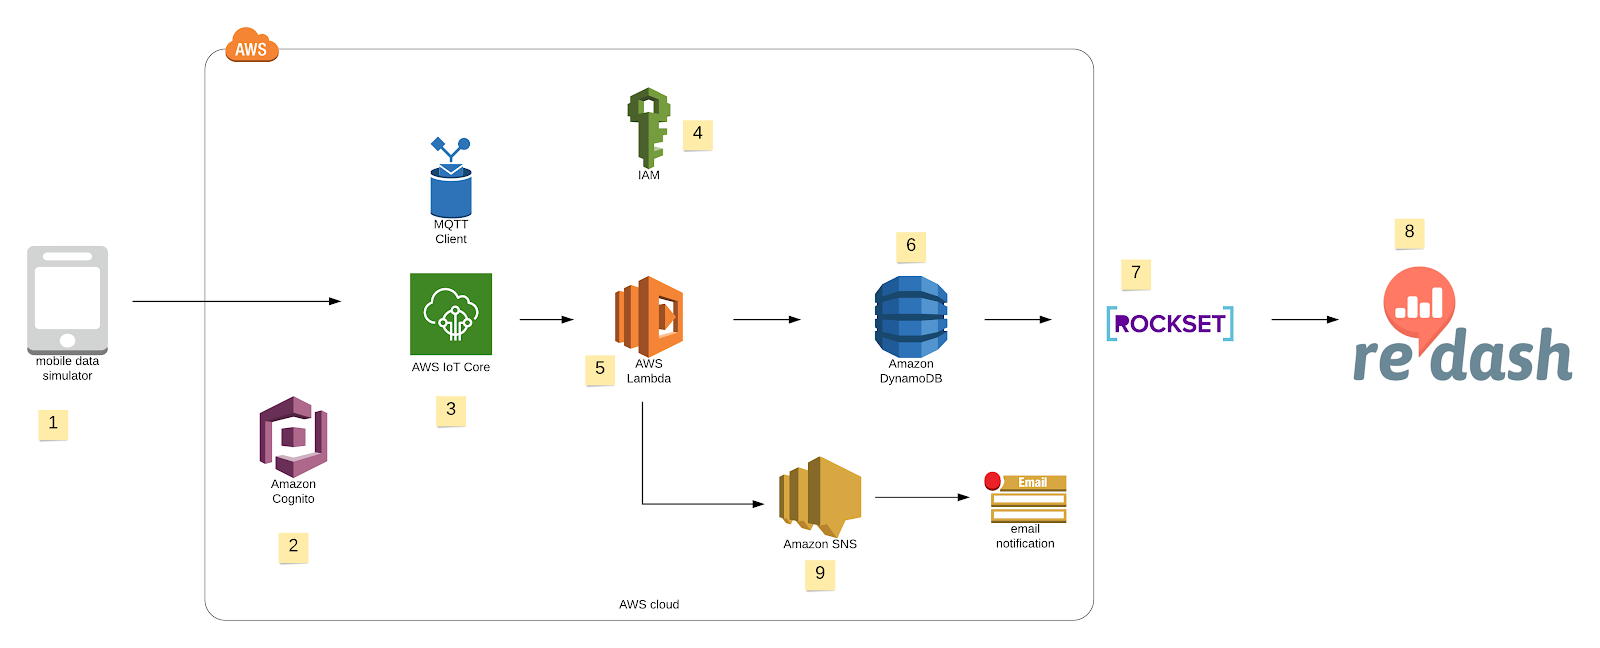 Fleet management on AWS